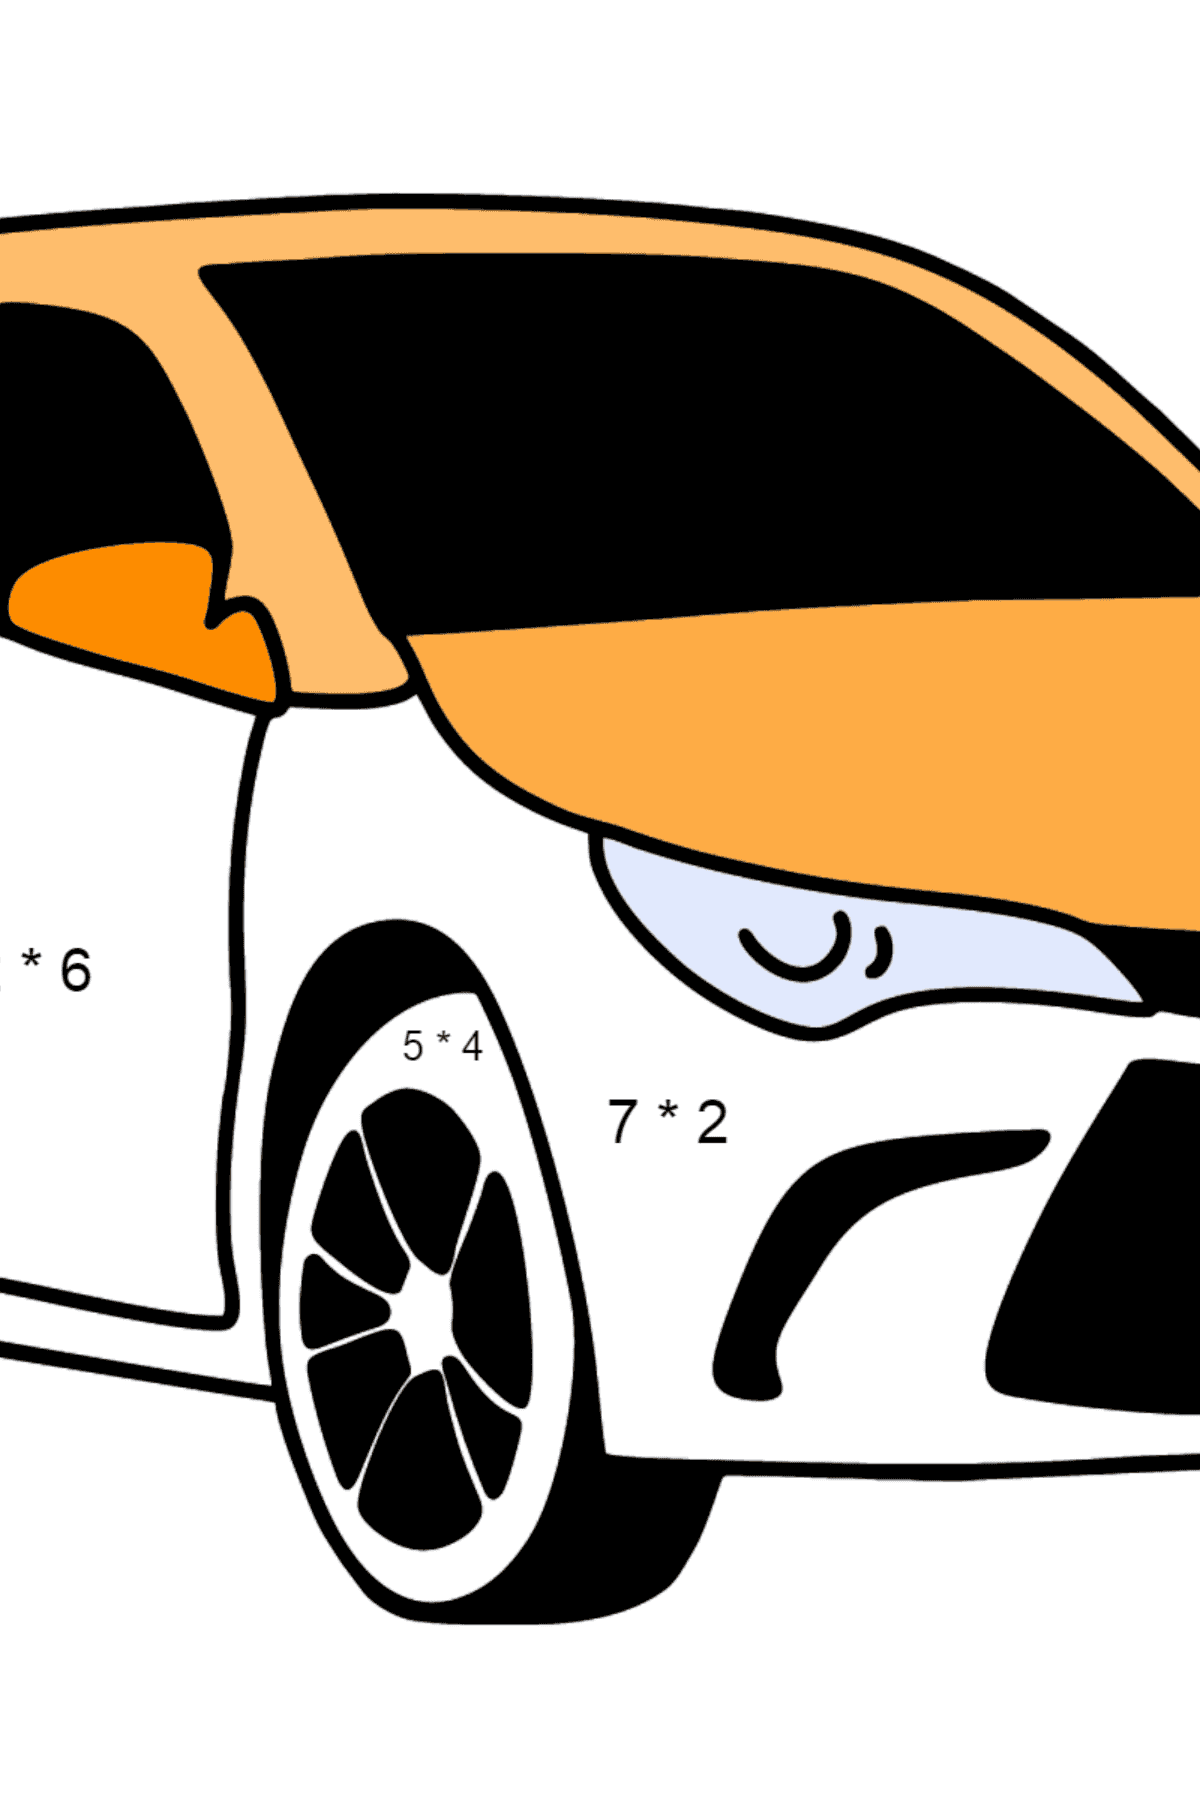 Toyota Camry coloring page - Math Coloring - Multiplication for Kids